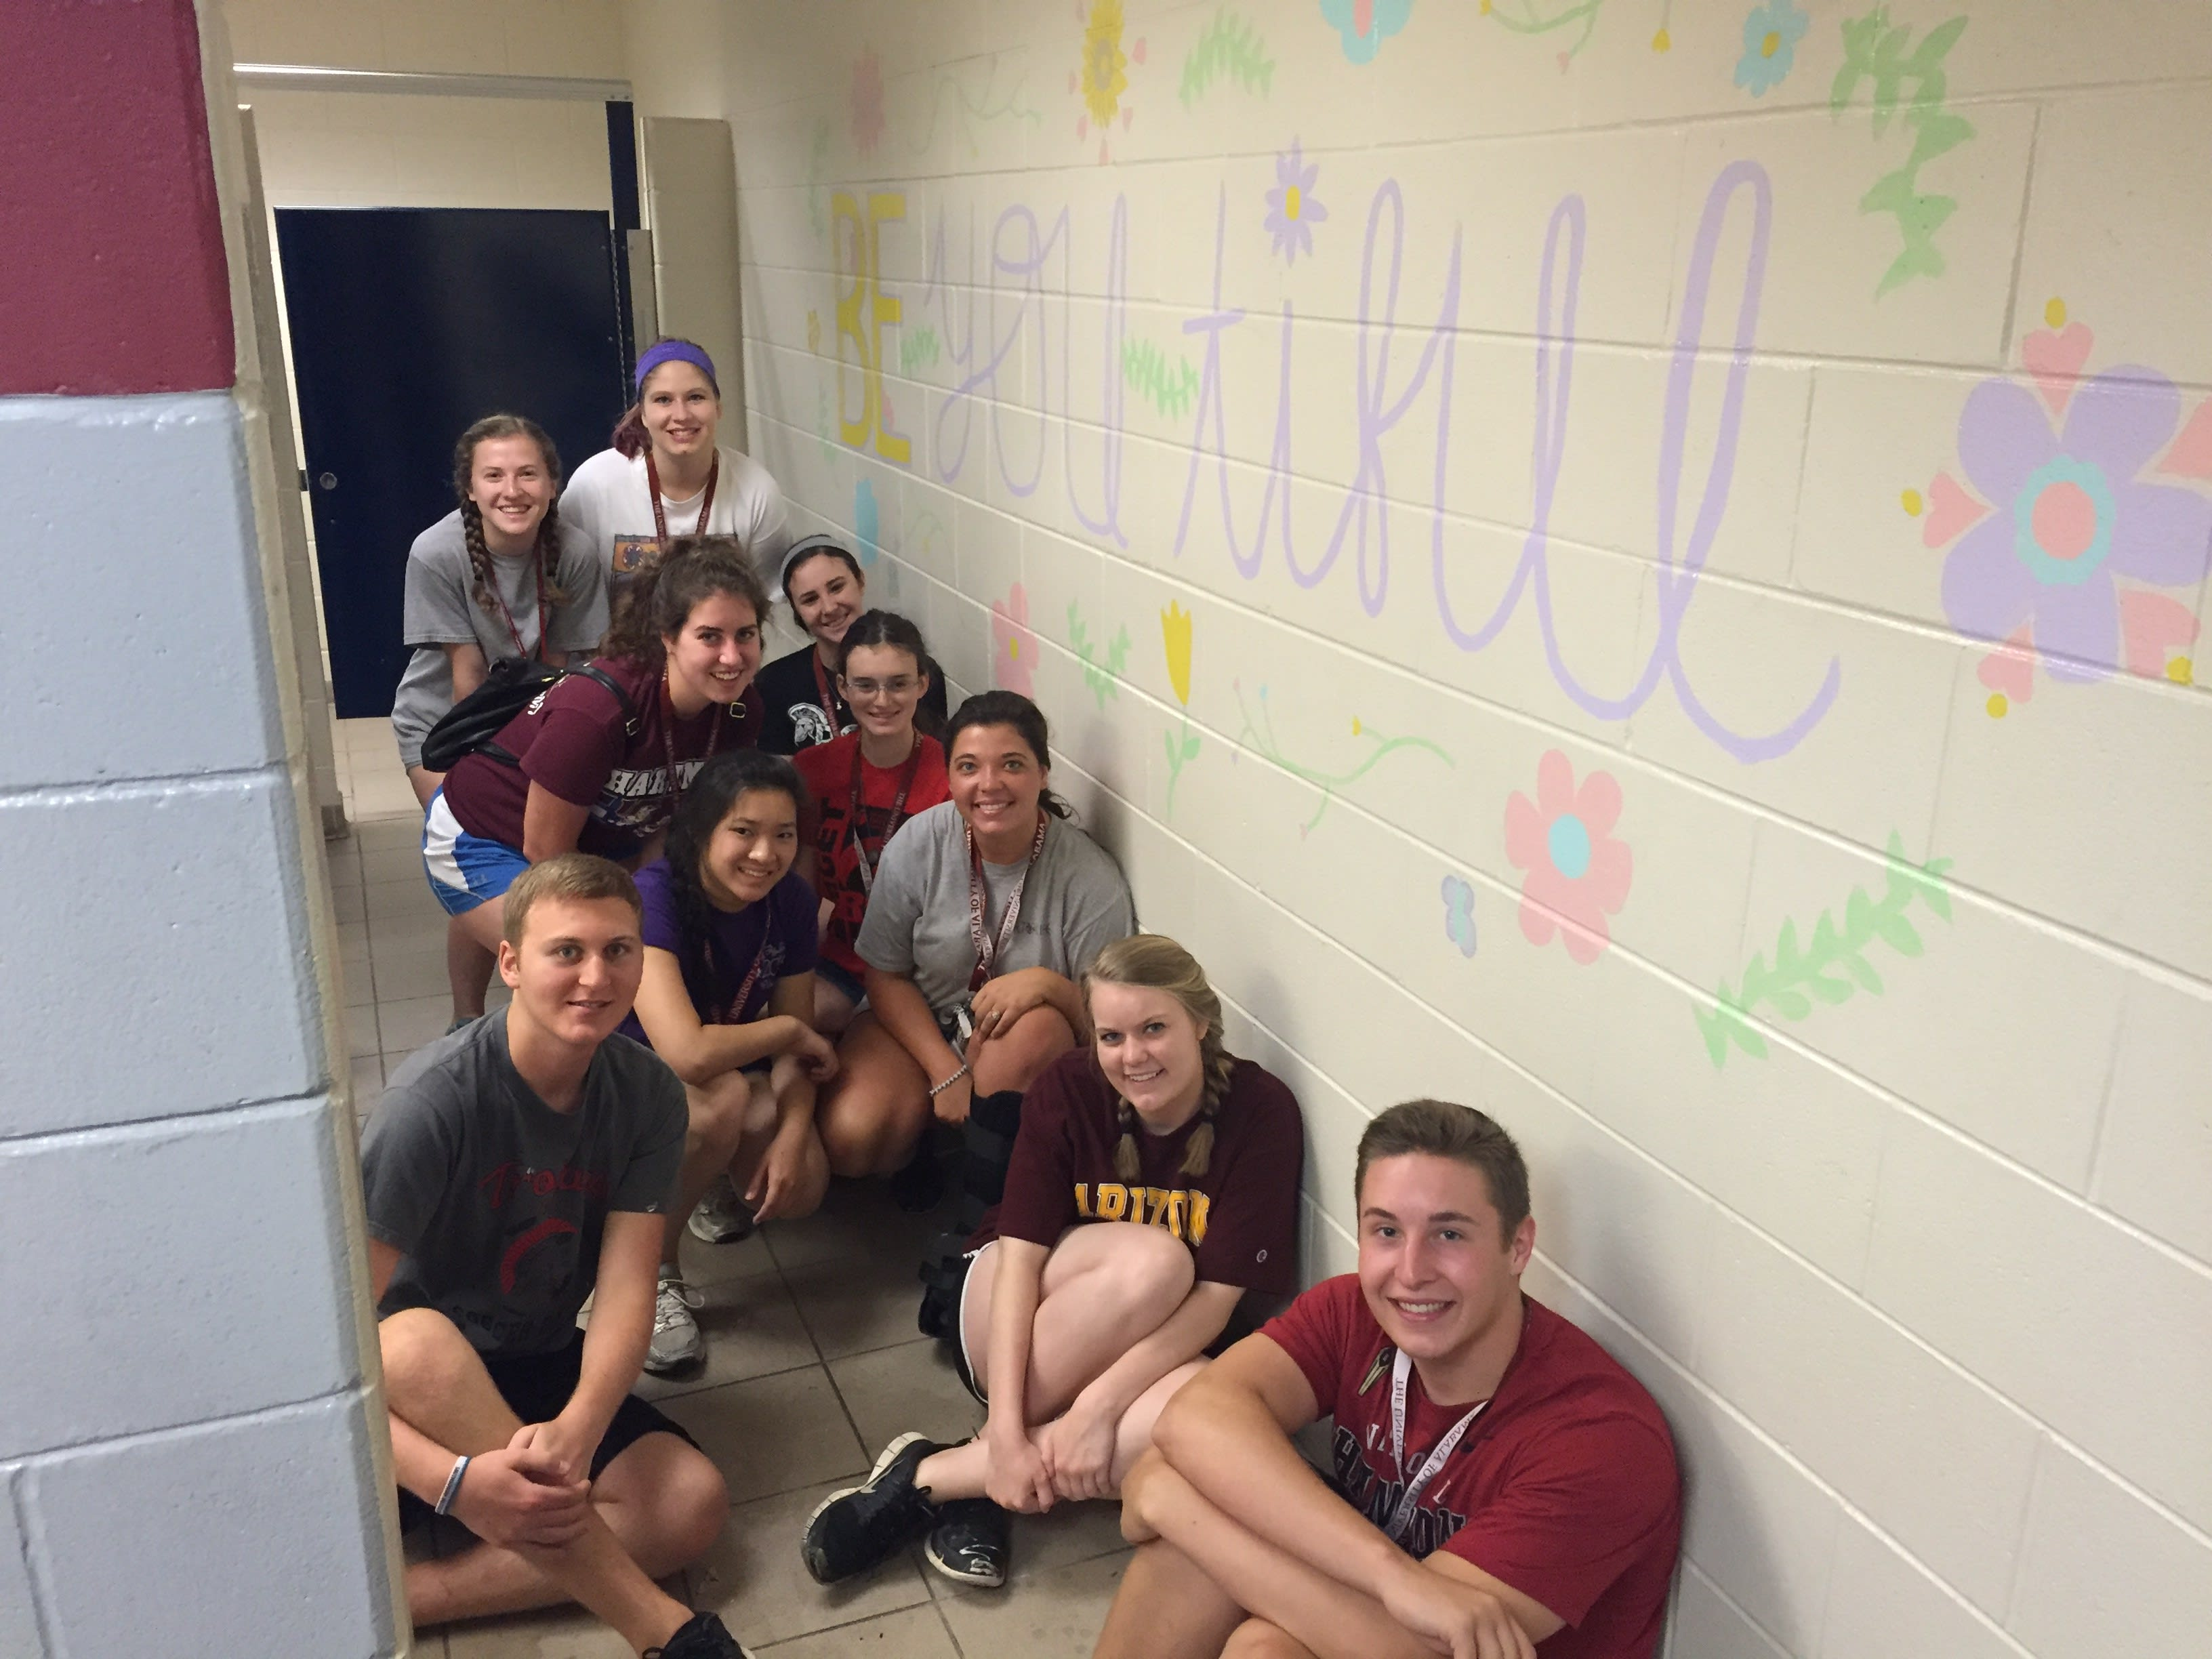 Students painting inspirational message a community project